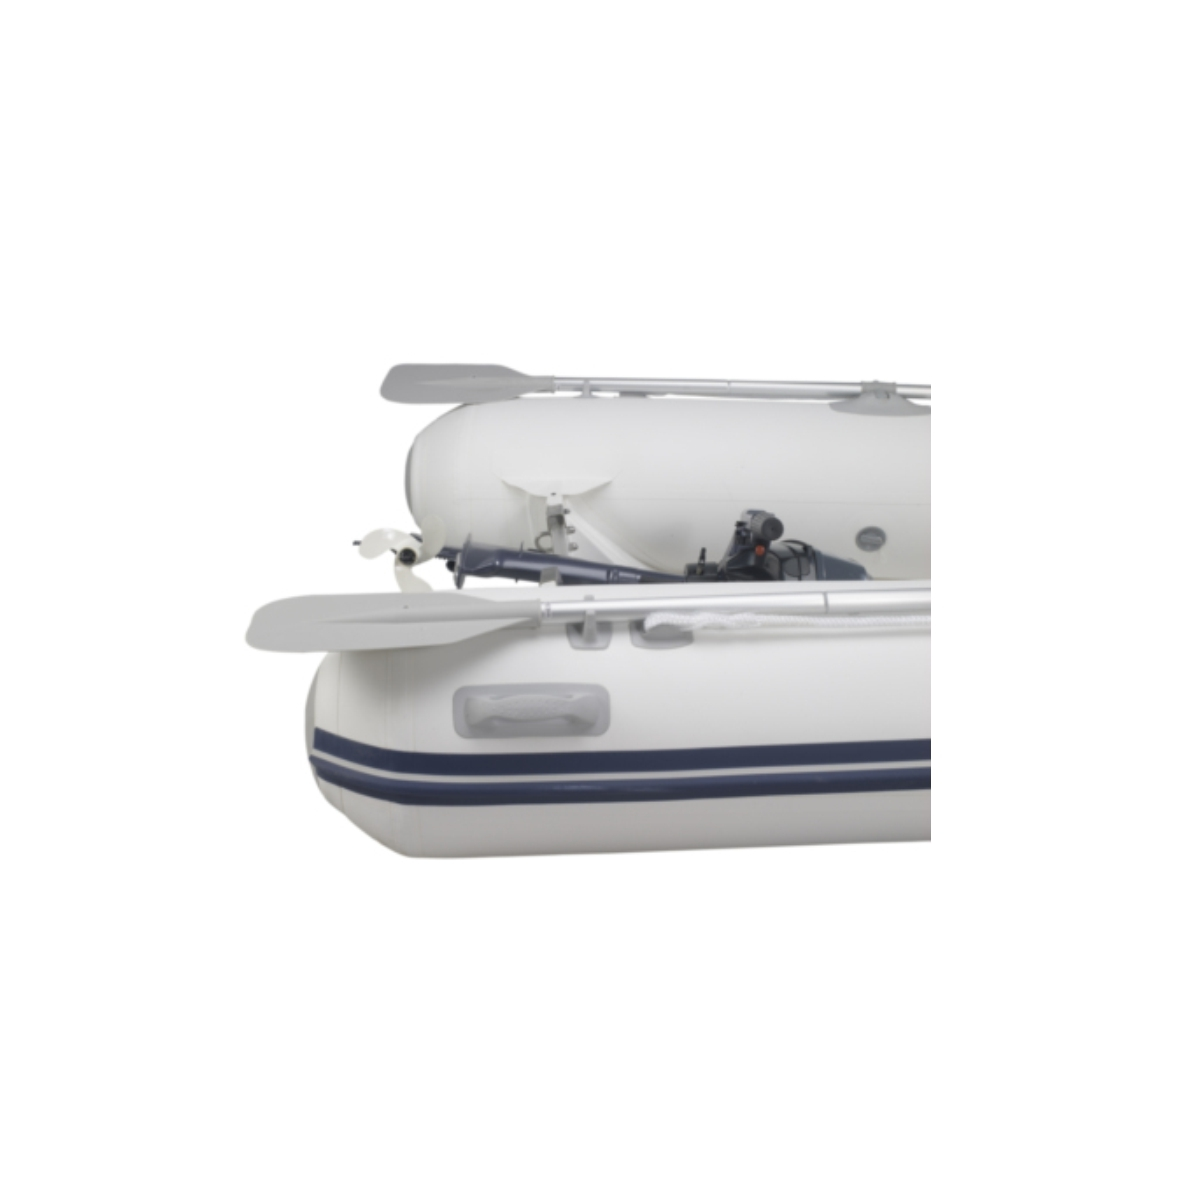 TENDER WITH FOLD-DOWN TRANSOM